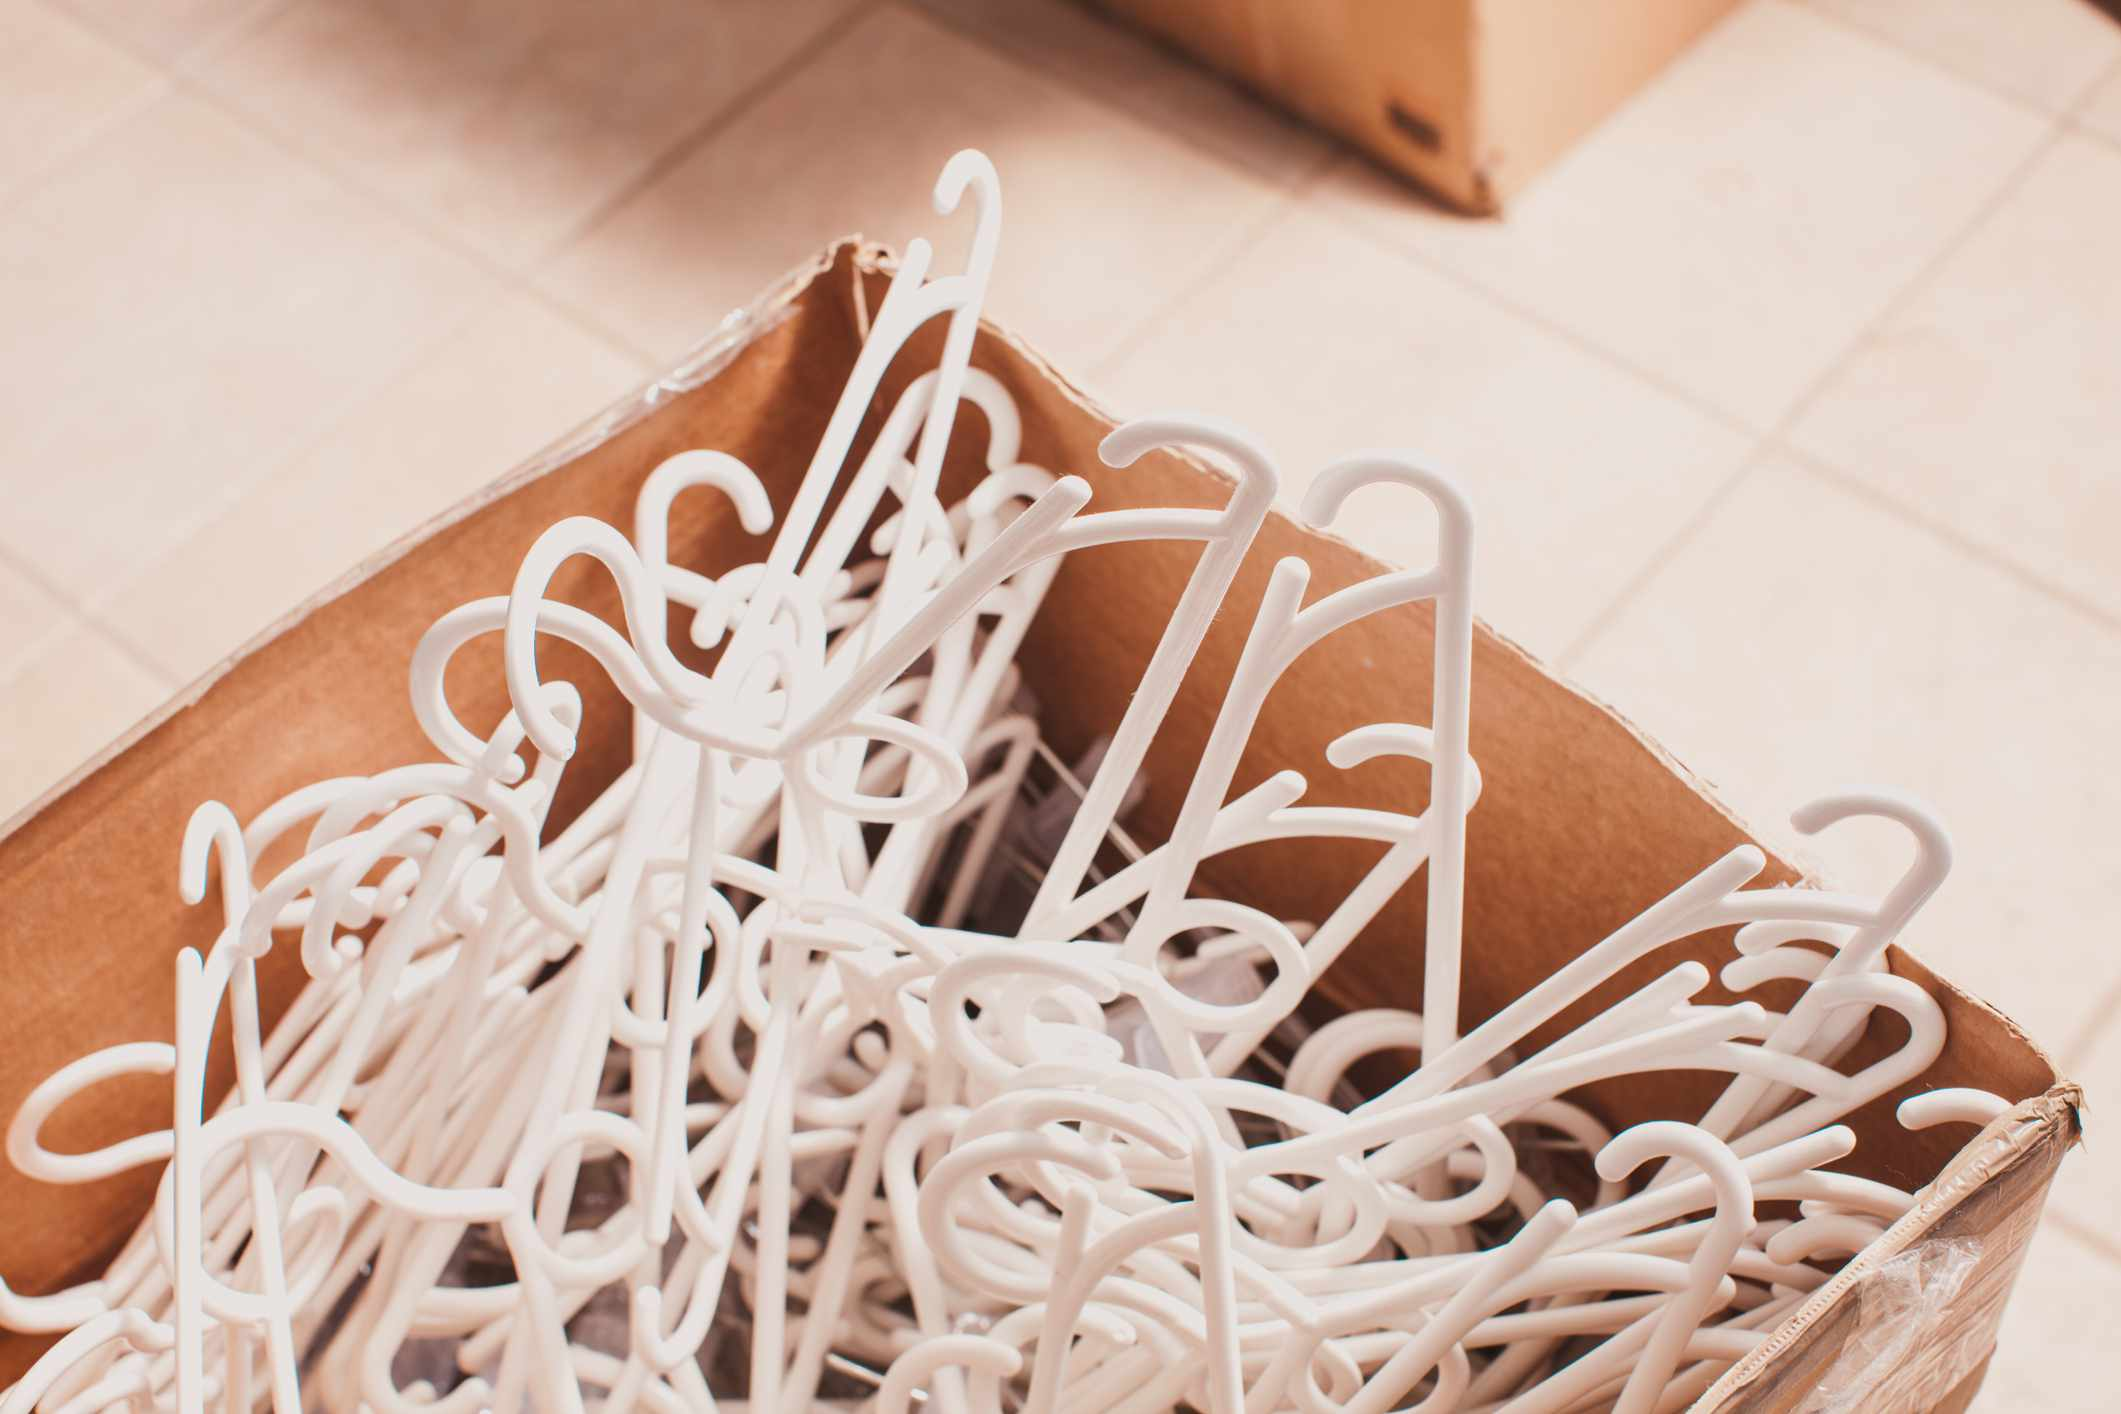 White plastic clothing hangers piled in a box.